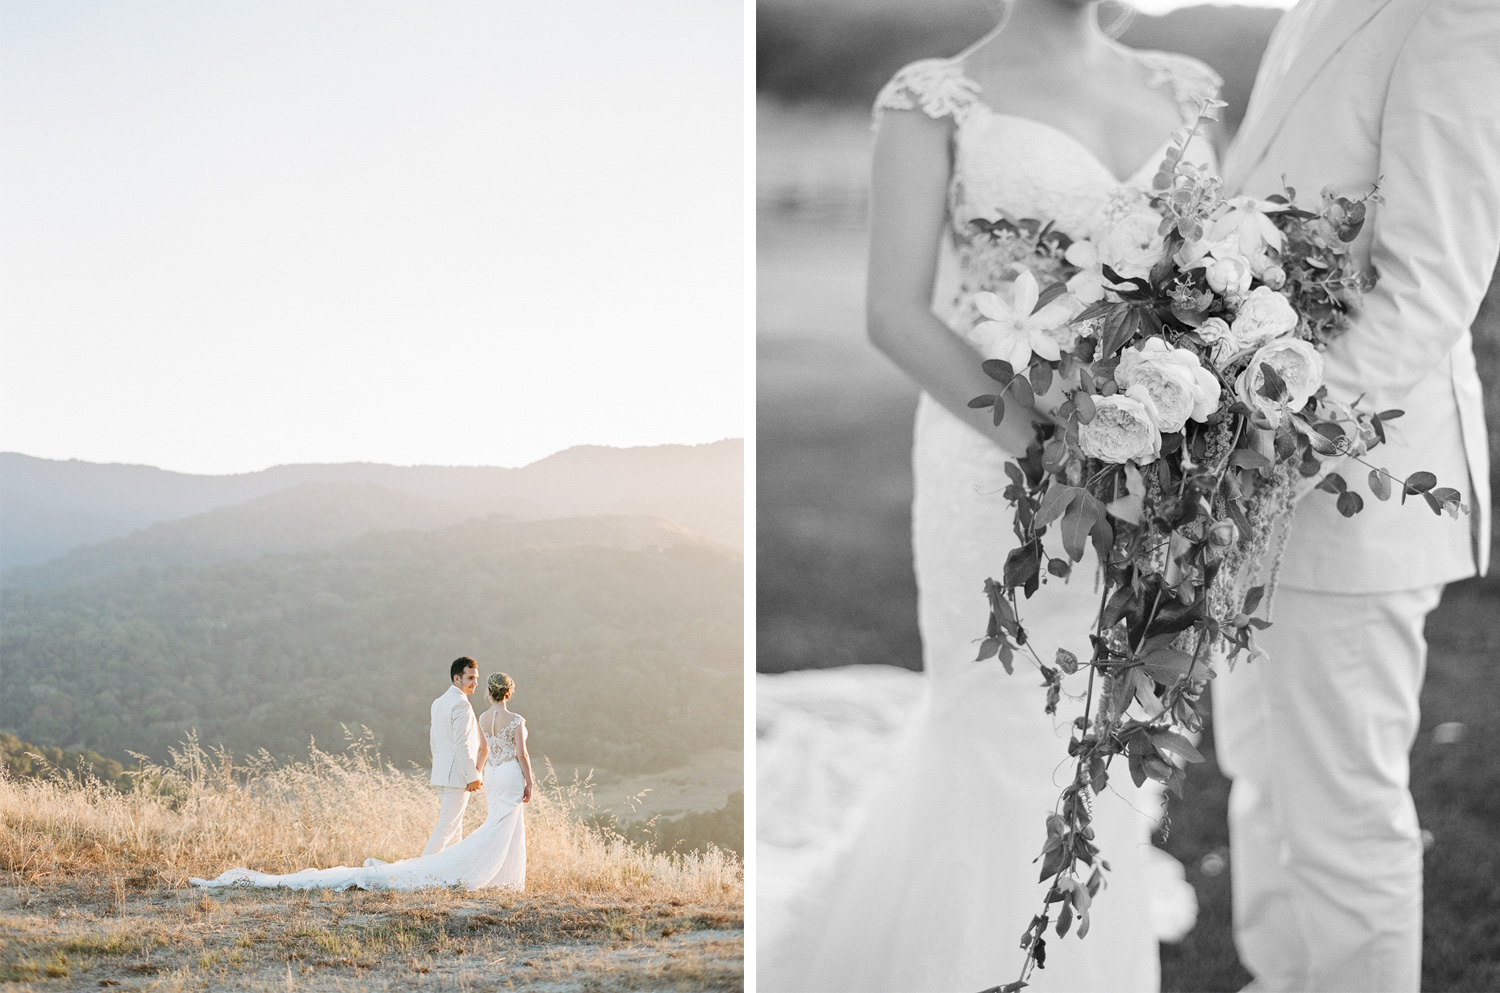 The bride's veils flows behind her during a romantic sunset couple session in the hills of Santa Lucia; photos by Sylvie Gil